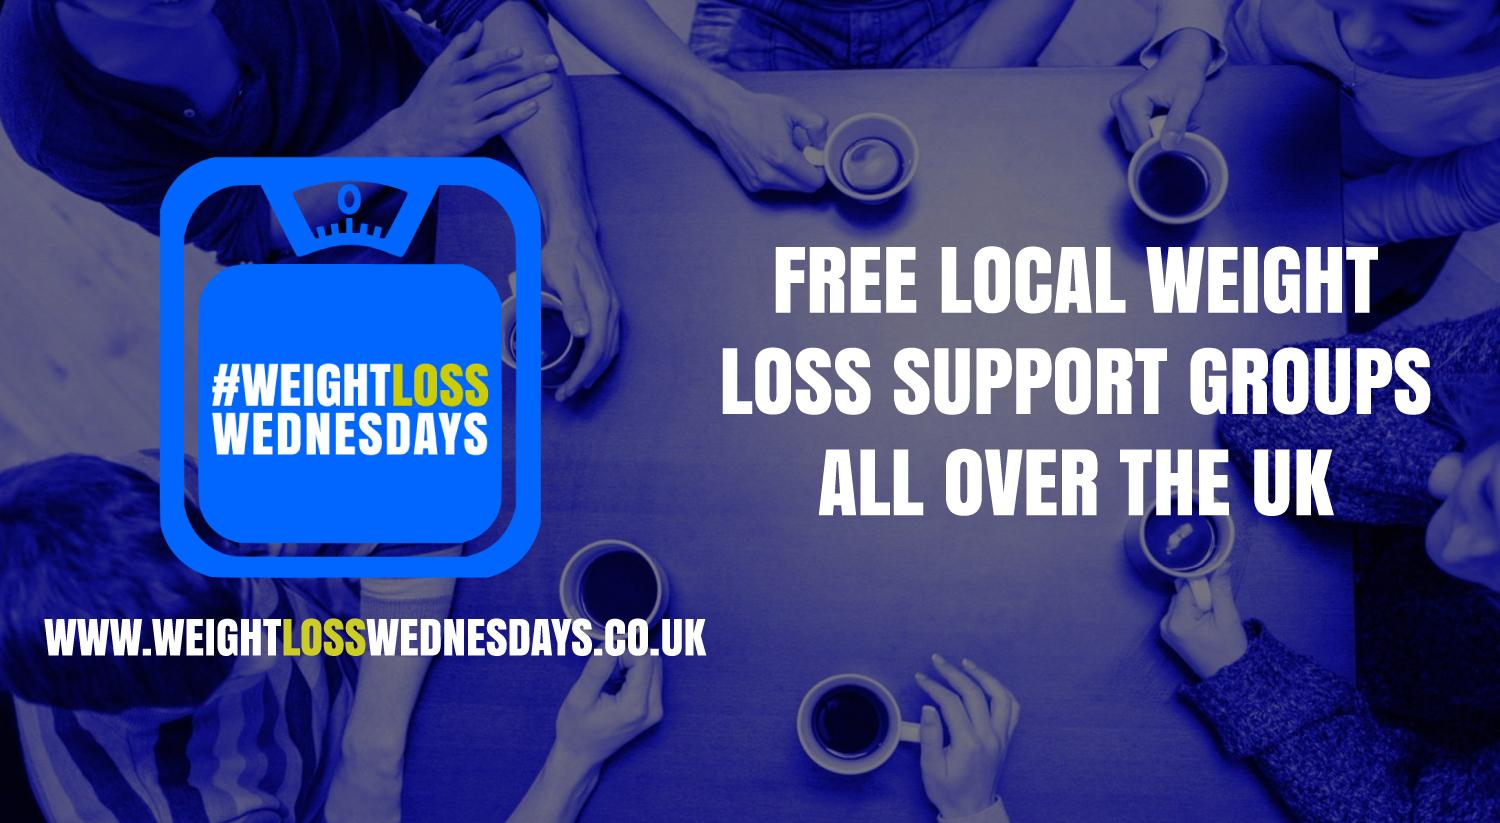 WEIGHT LOSS WEDNESDAYS! Free weekly support group in Musselburgh